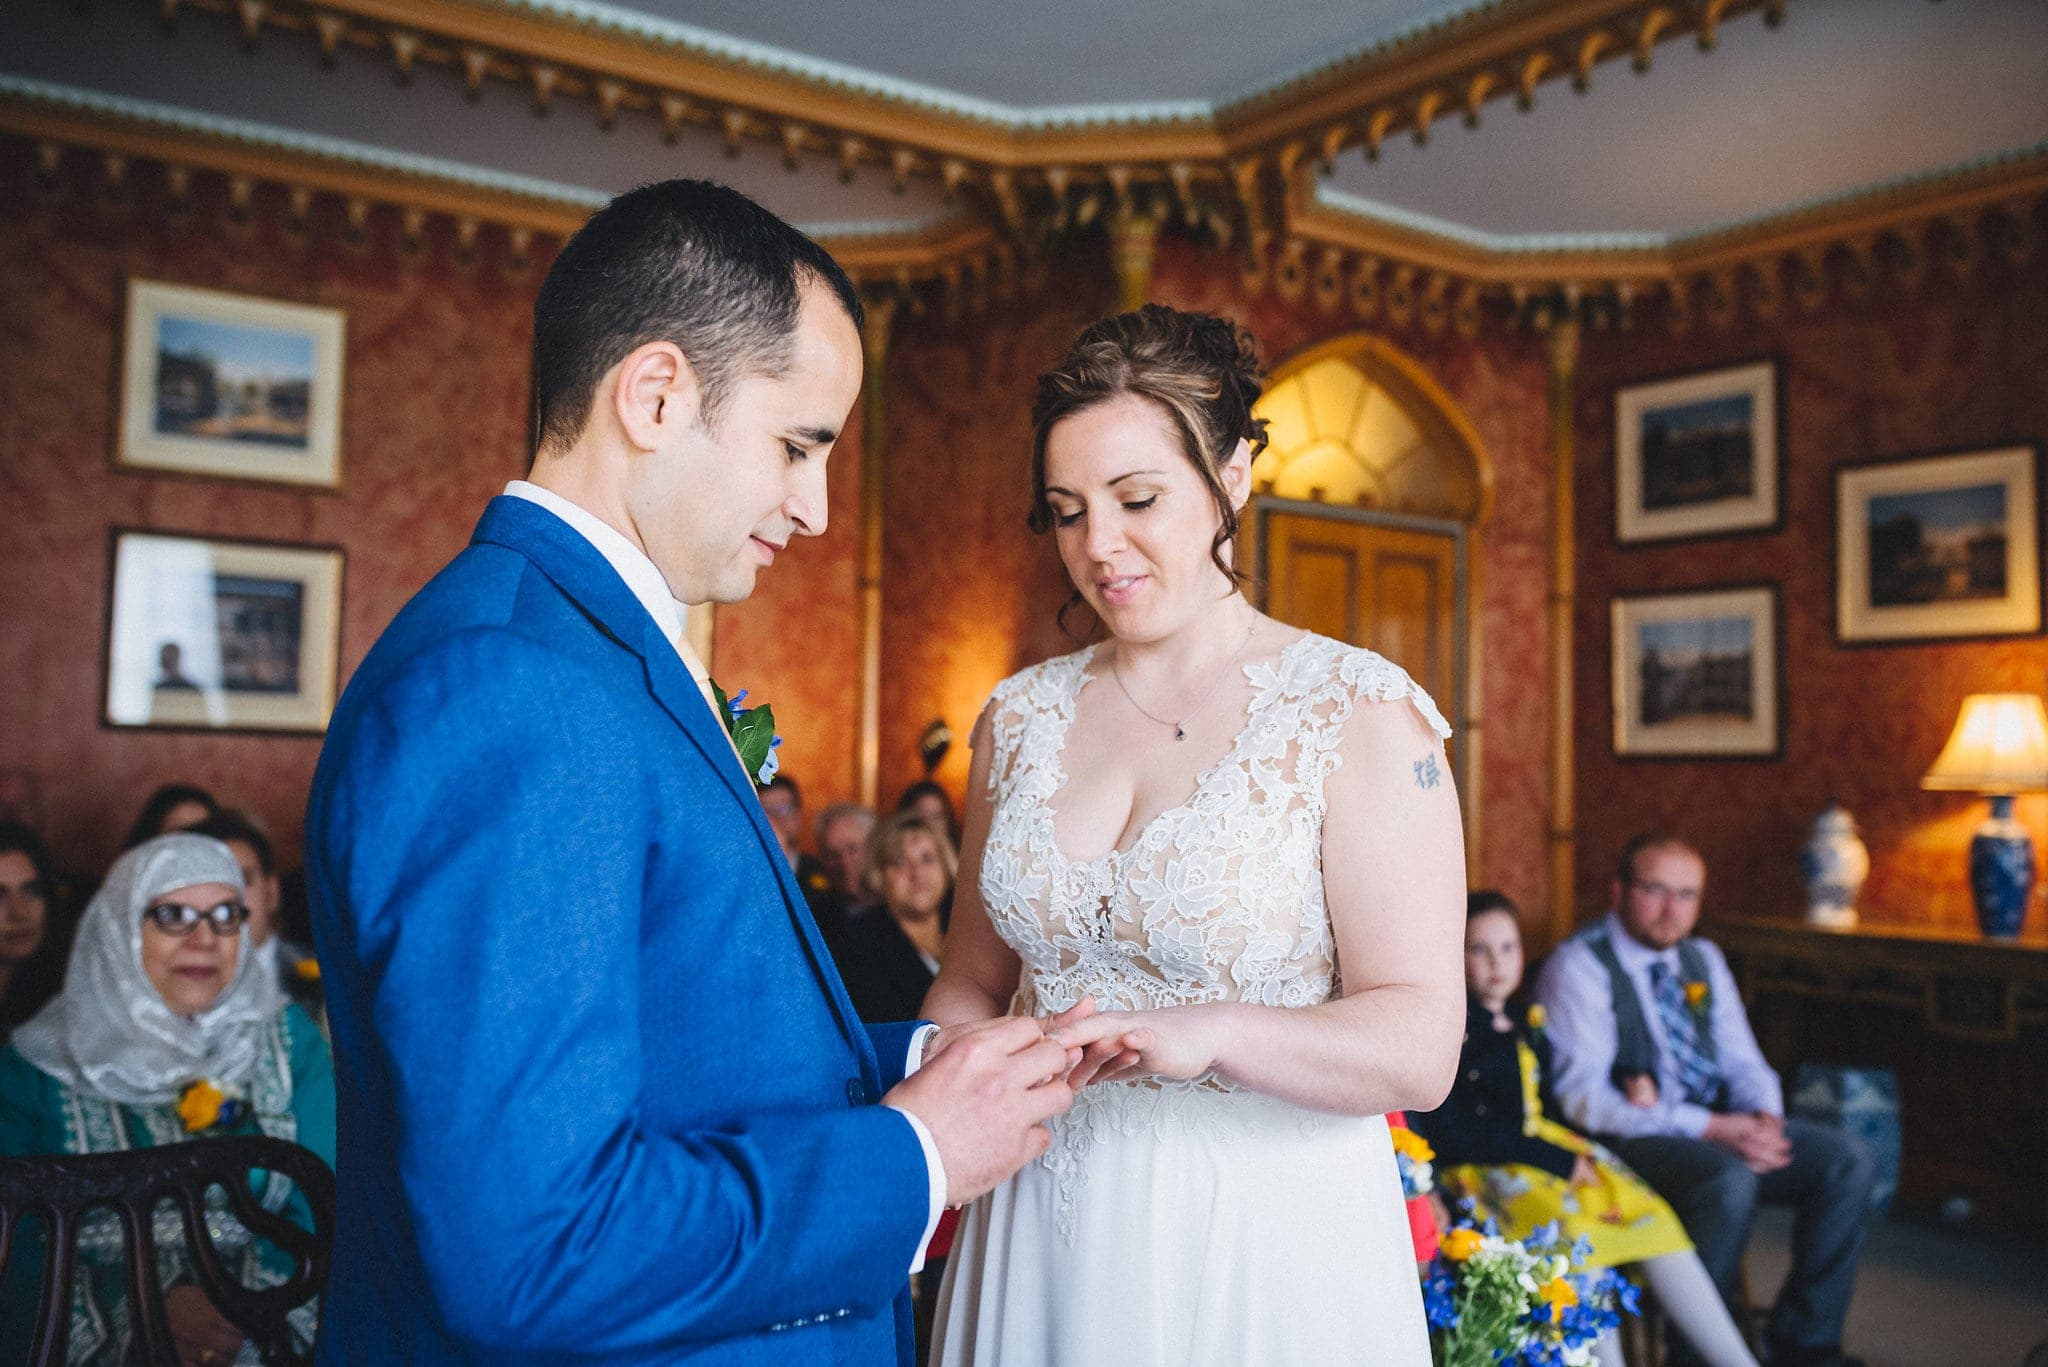 Groom places bride's ring on her finger at Brighton Royal Pavilion wedding